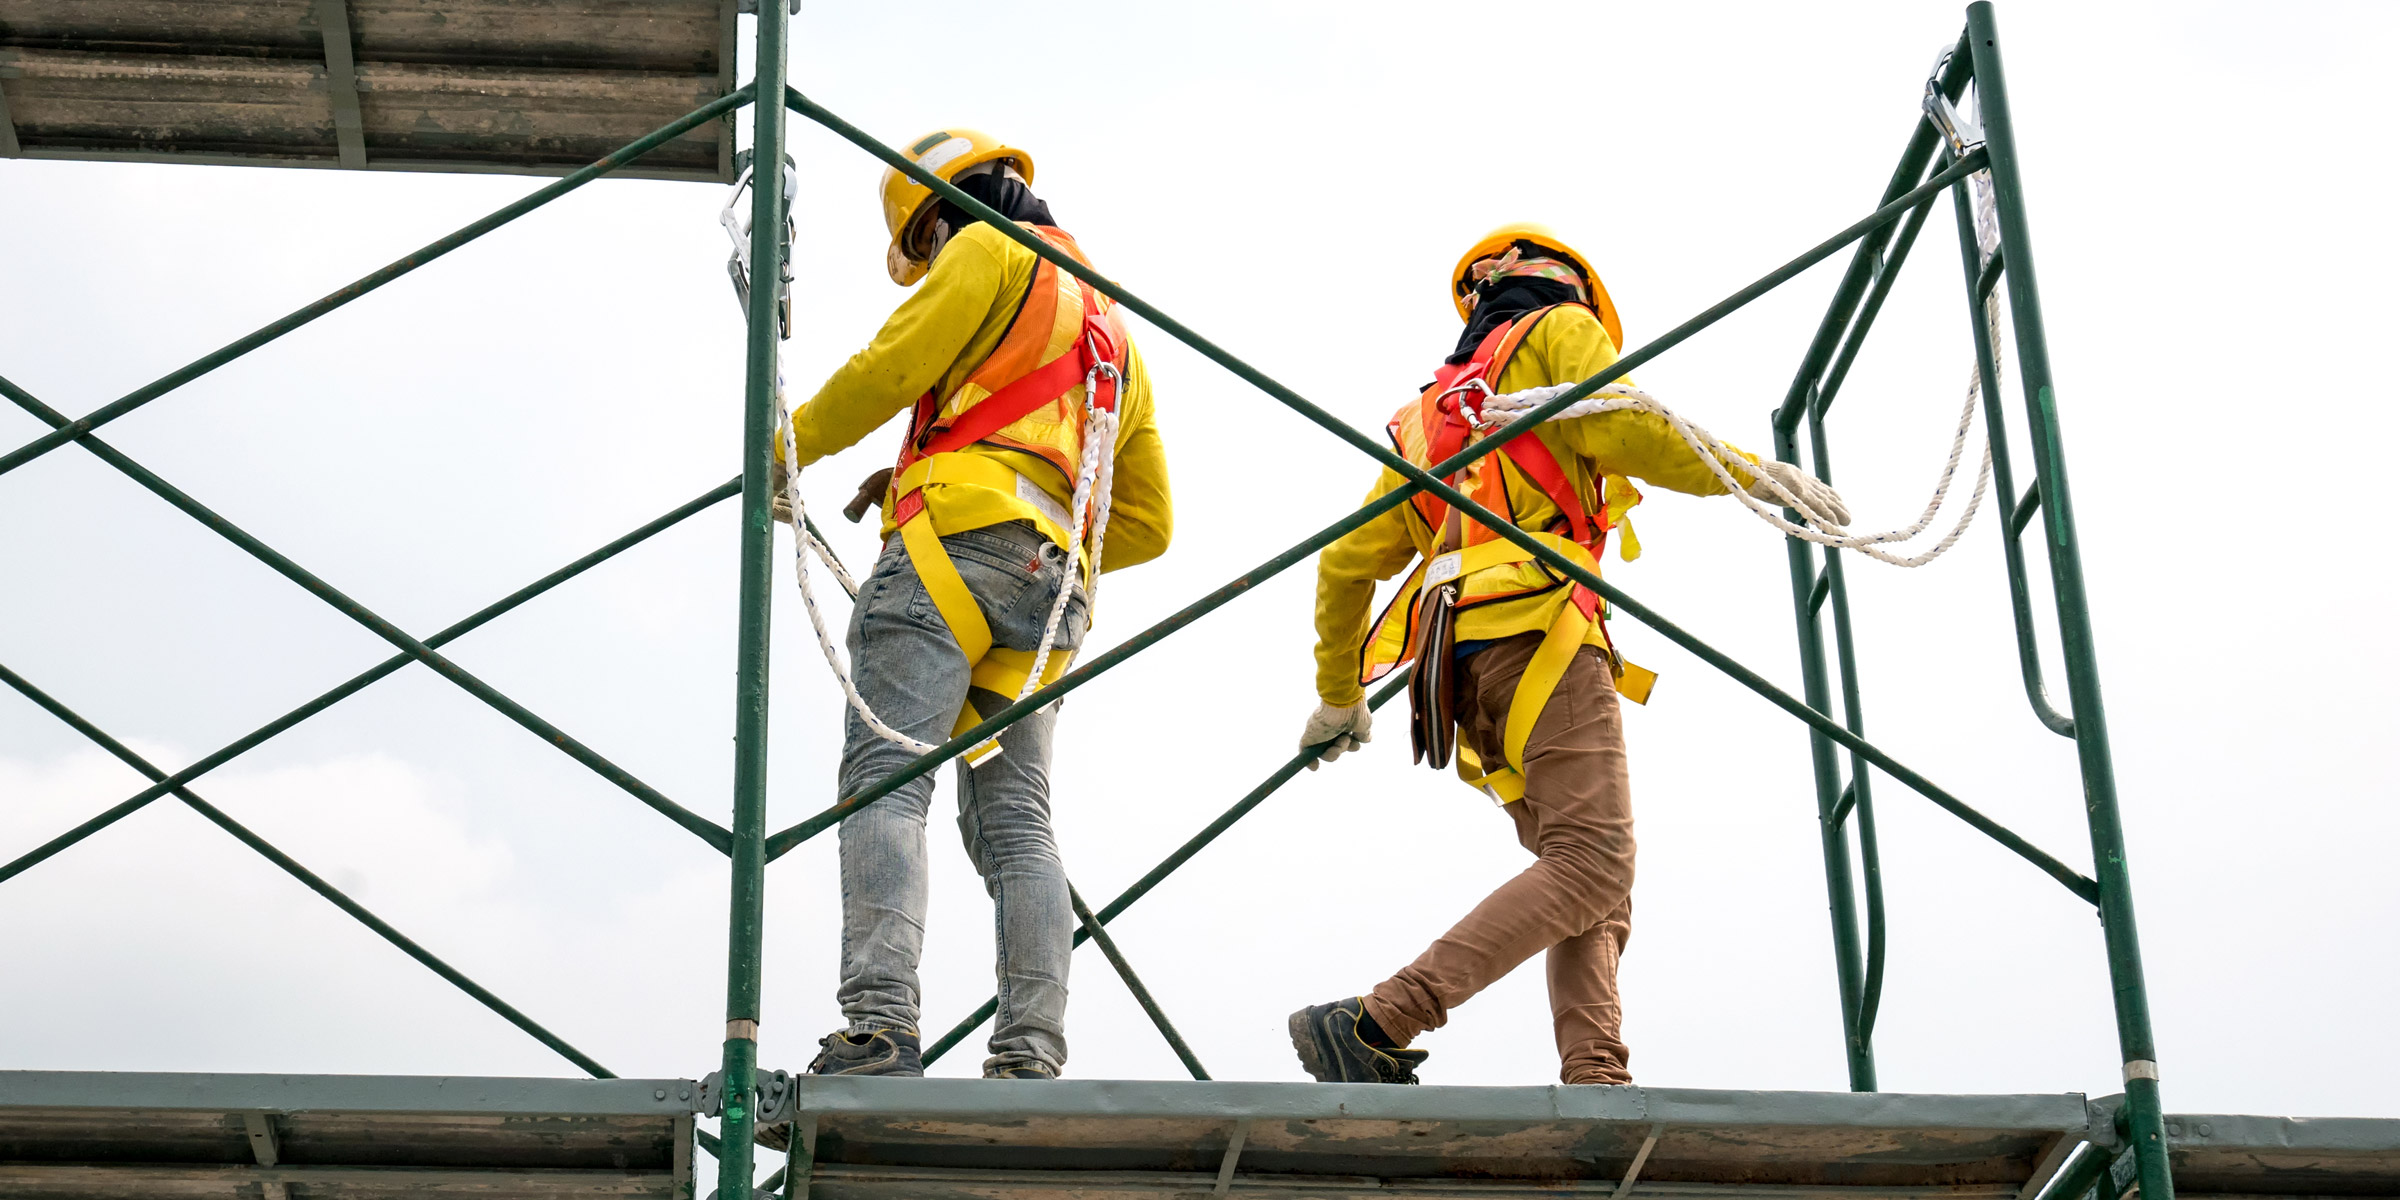 Scaffolding Tradesmen - what do they do?